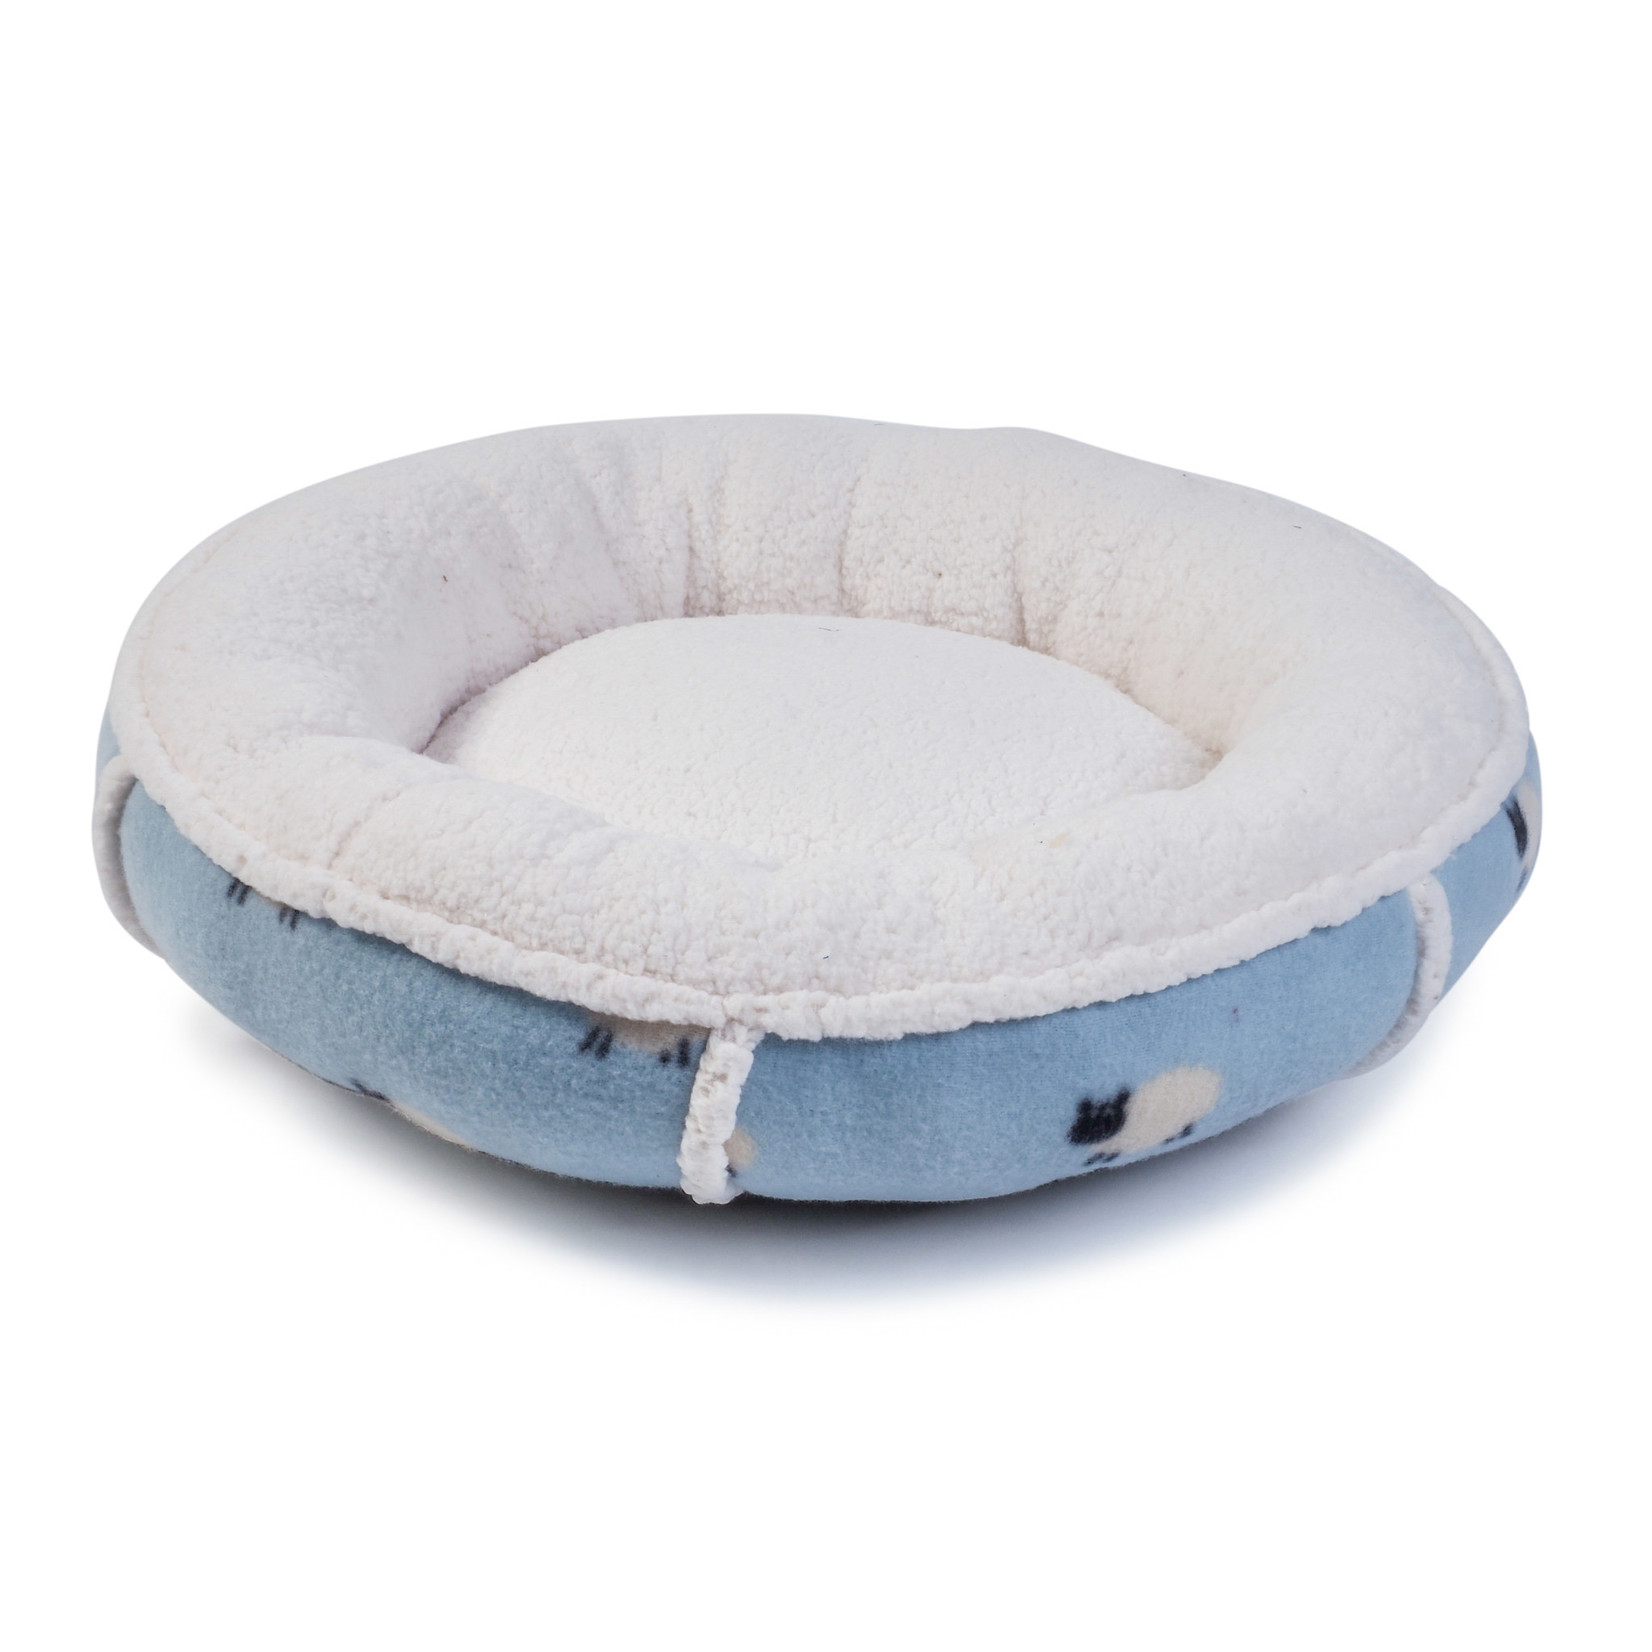 Zoon Counting Sheep Donut Cat Bed, 45 x 45 x 12cm